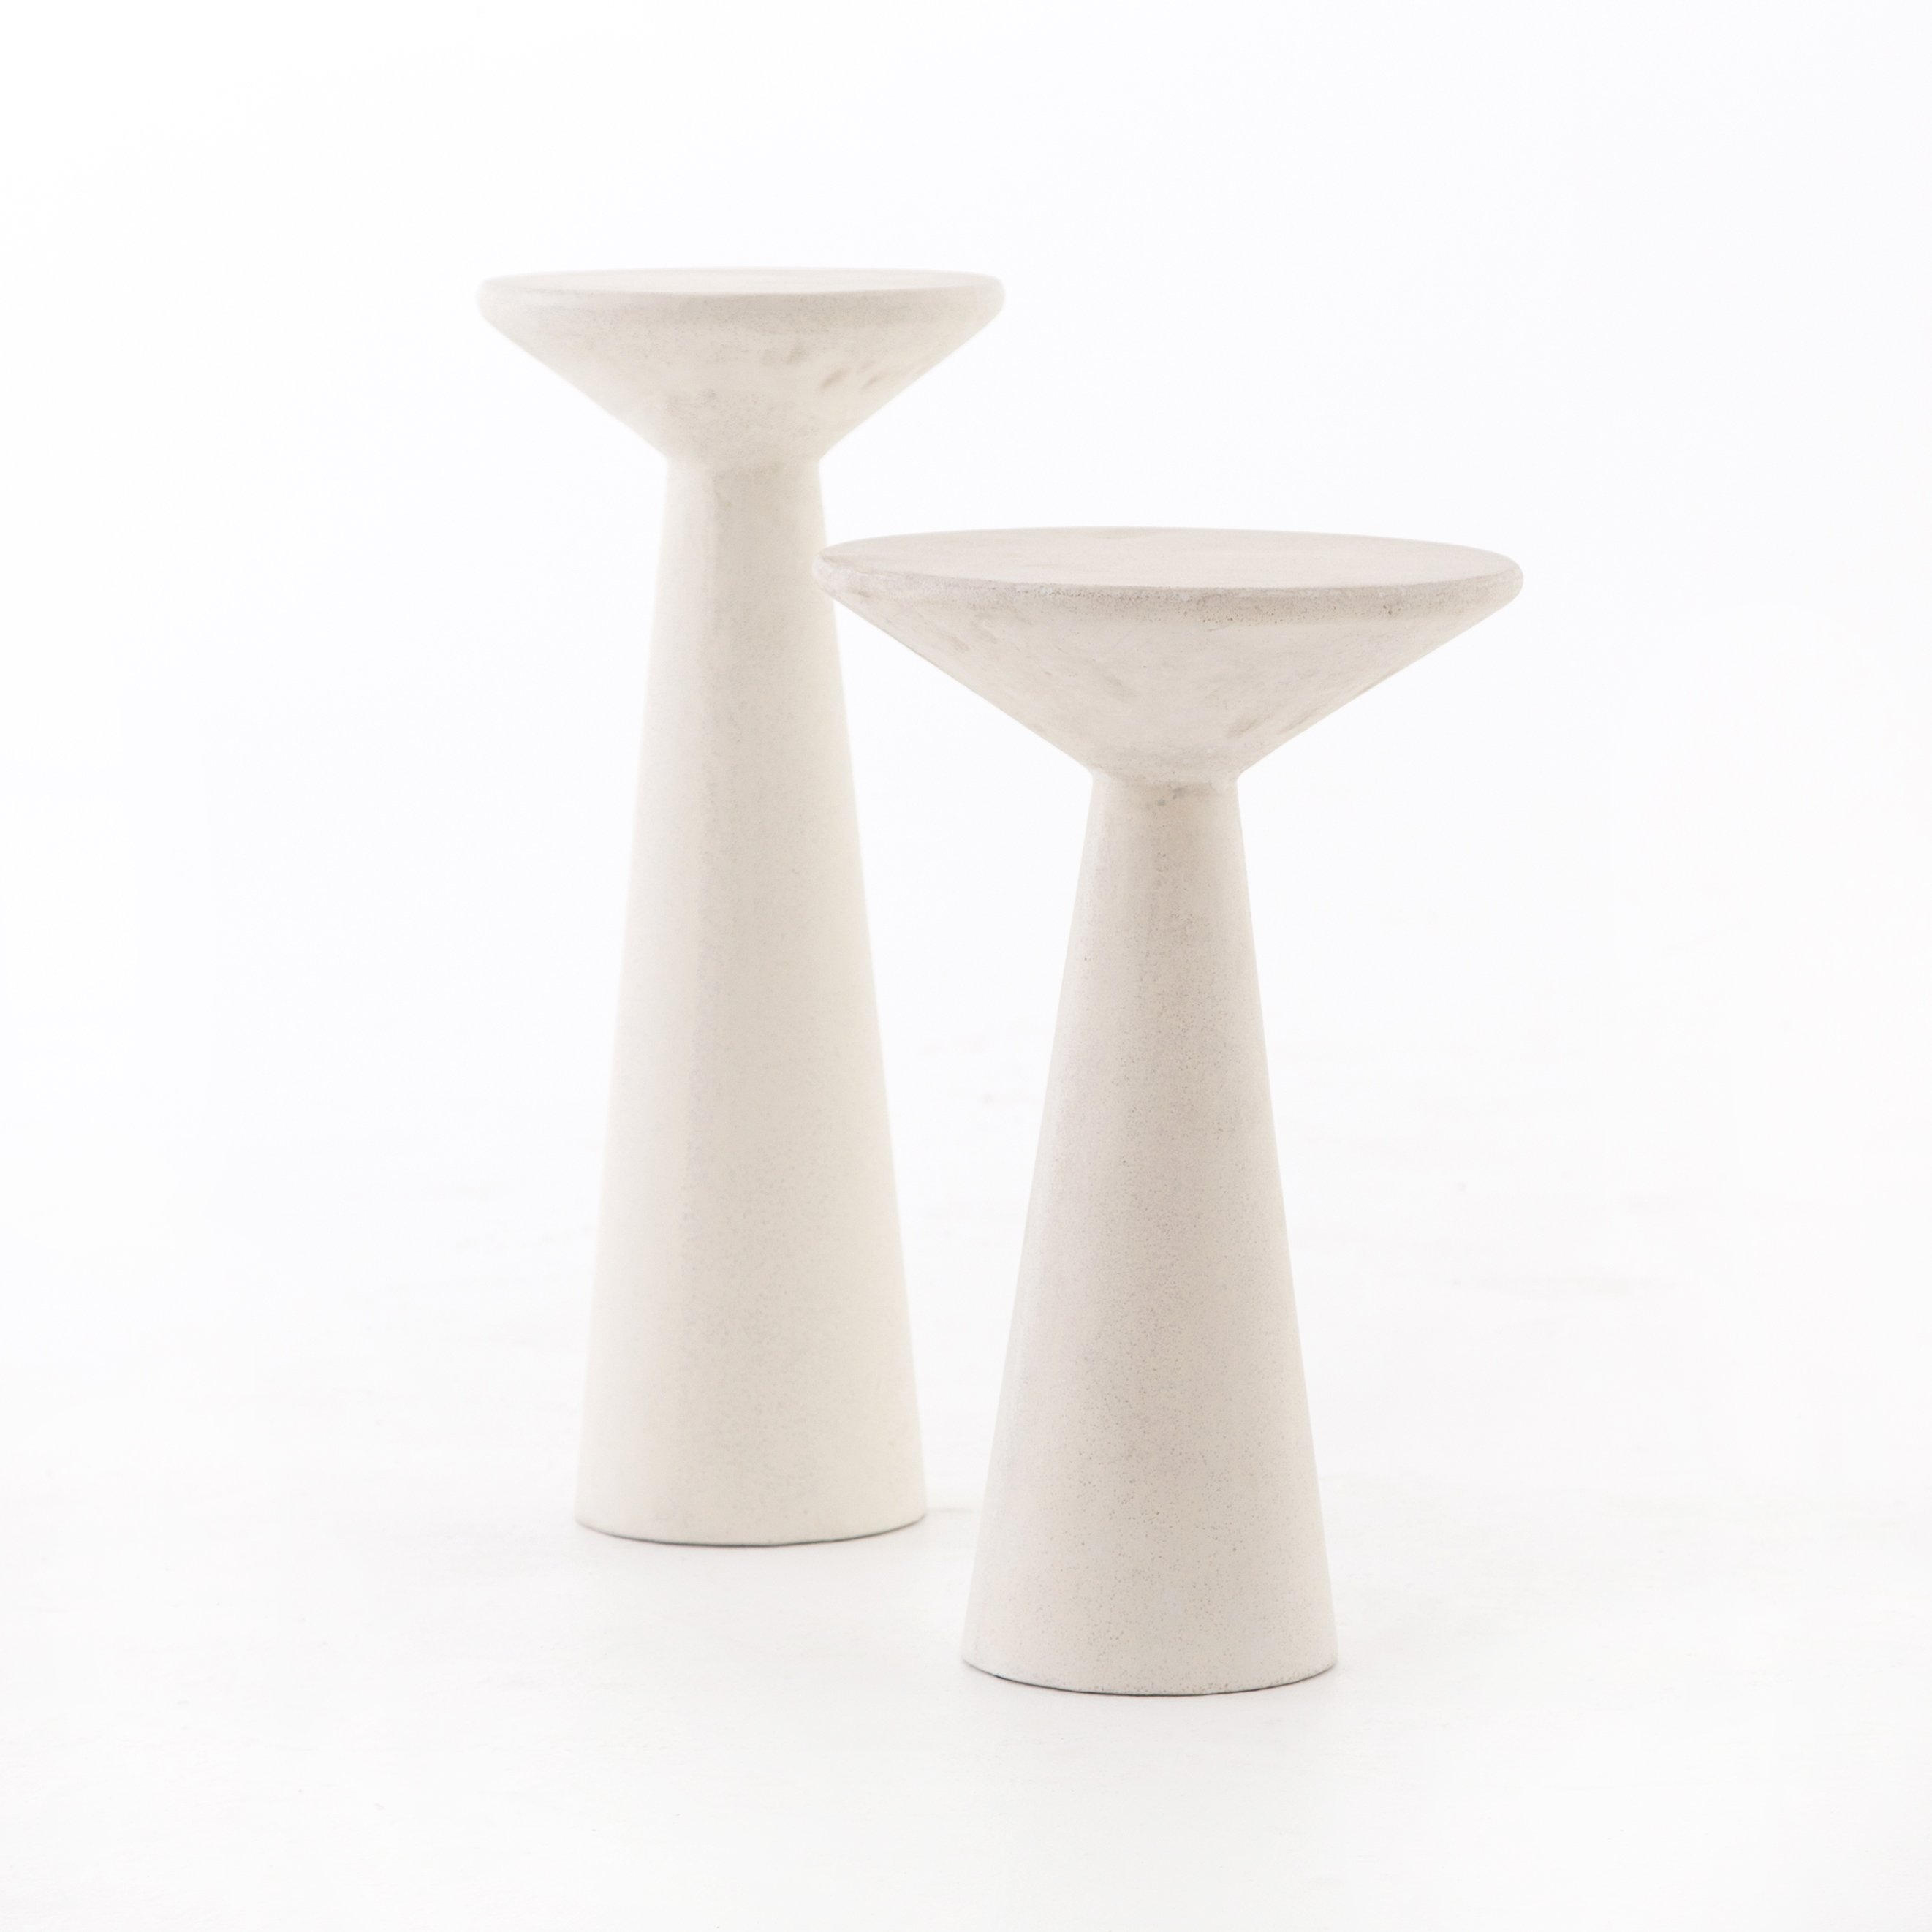 vevr four hands ravine concrete accent tables set white pedestal table quote details clock end lightning fixtures coca cola tiffany lamp inch tablecloth marble glass chestnut